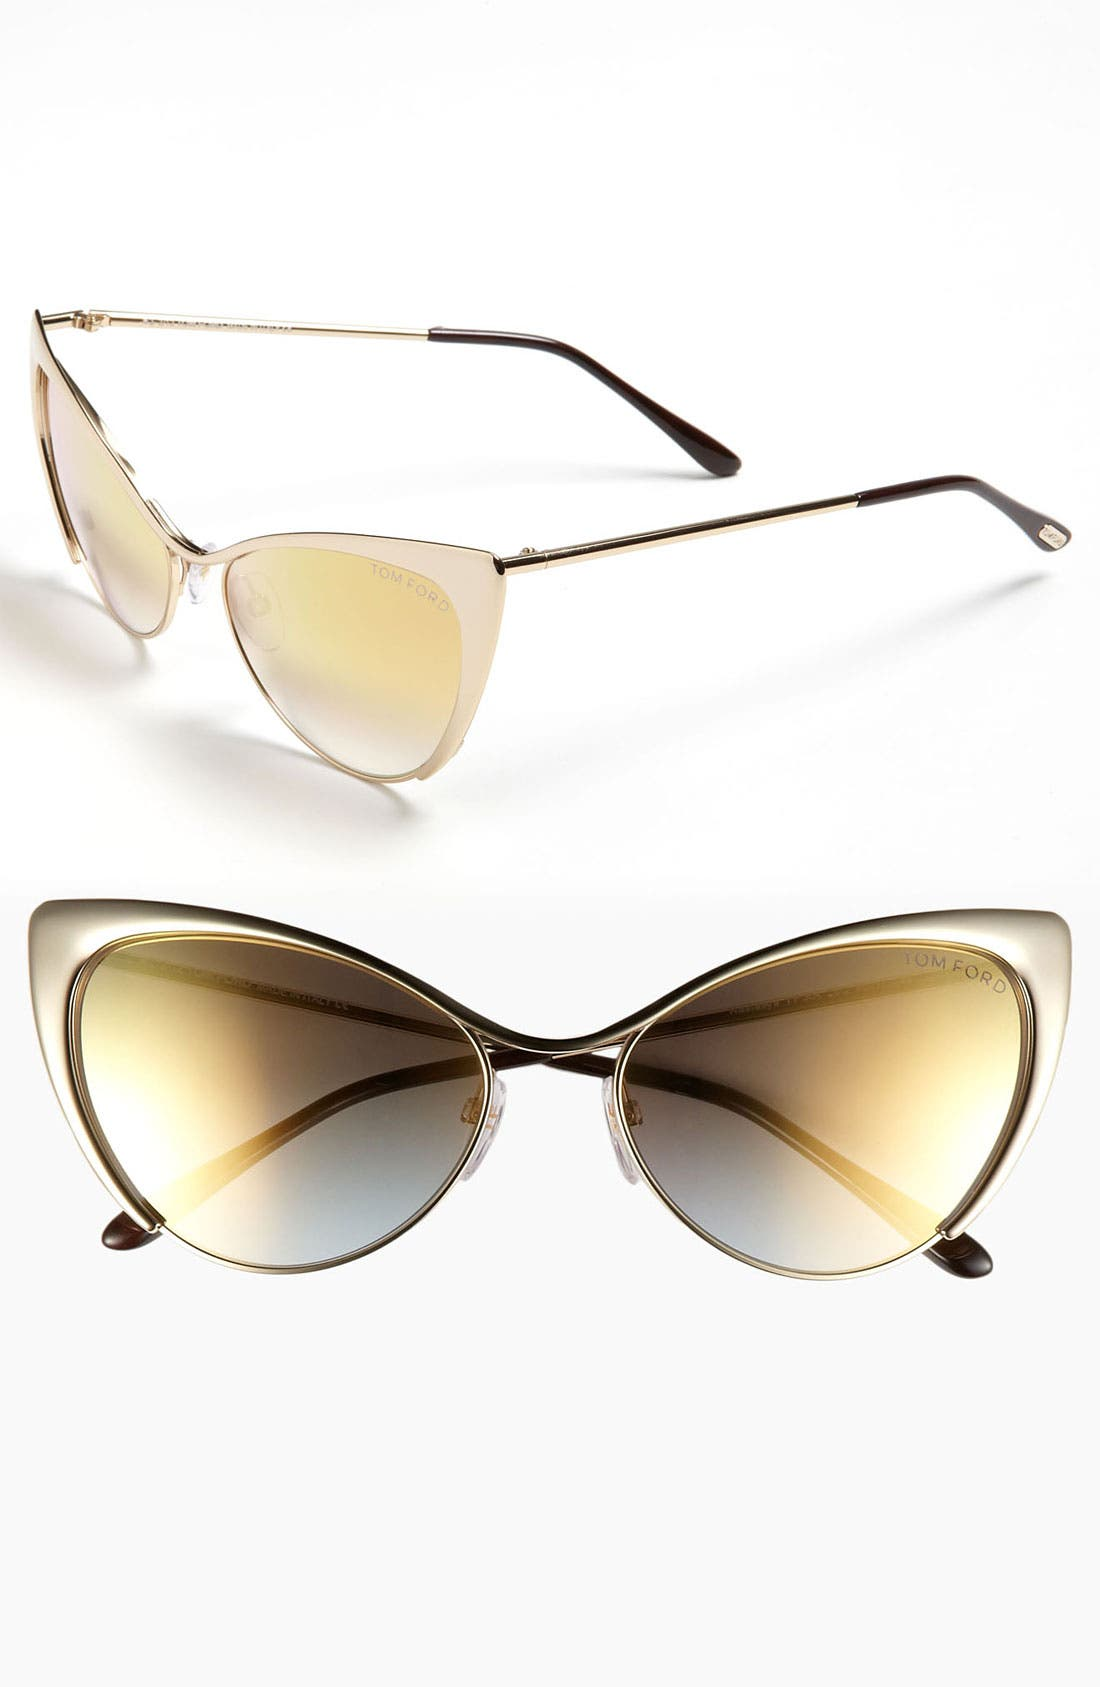 Main Image - Tom Ford 'Nastasya' 56mm Sunglasses